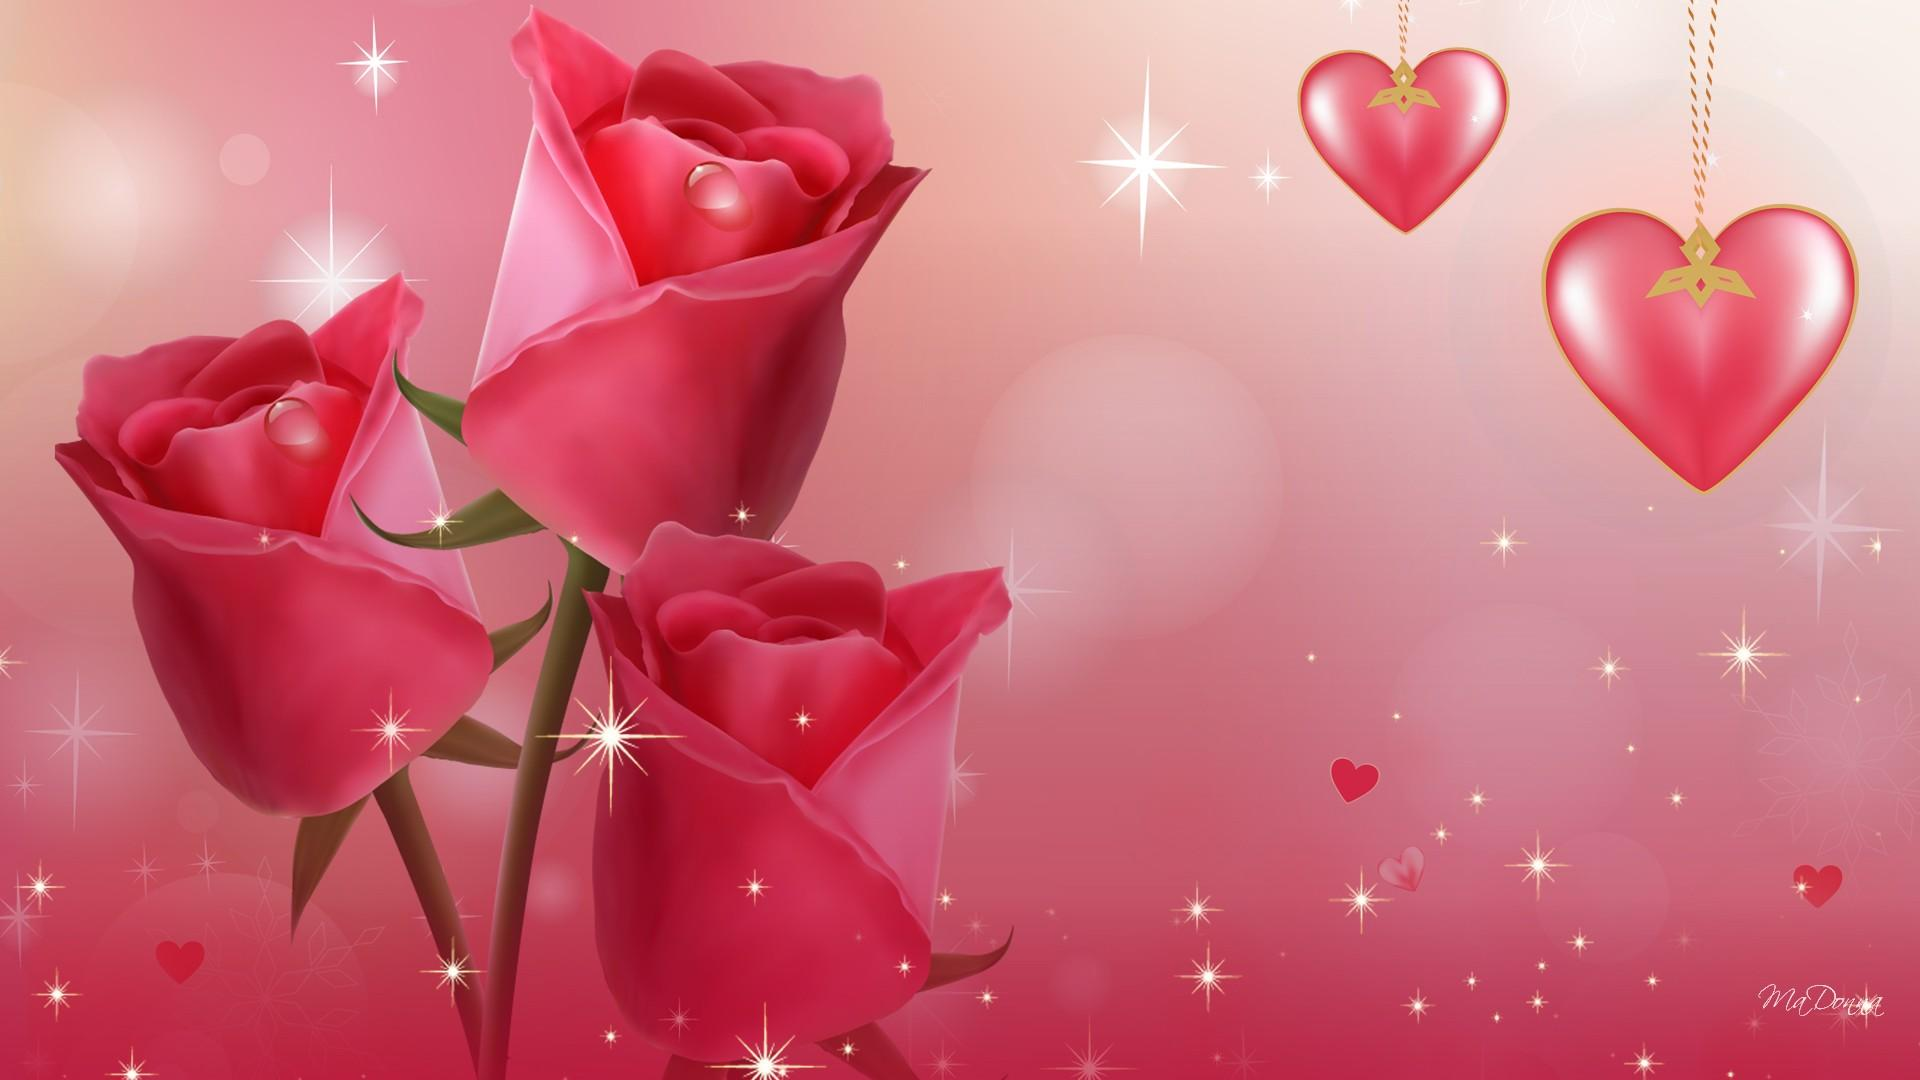 Love Gm Wallpaper Hd : Beautiful Love Wallpaper HD - WallpaperSafari